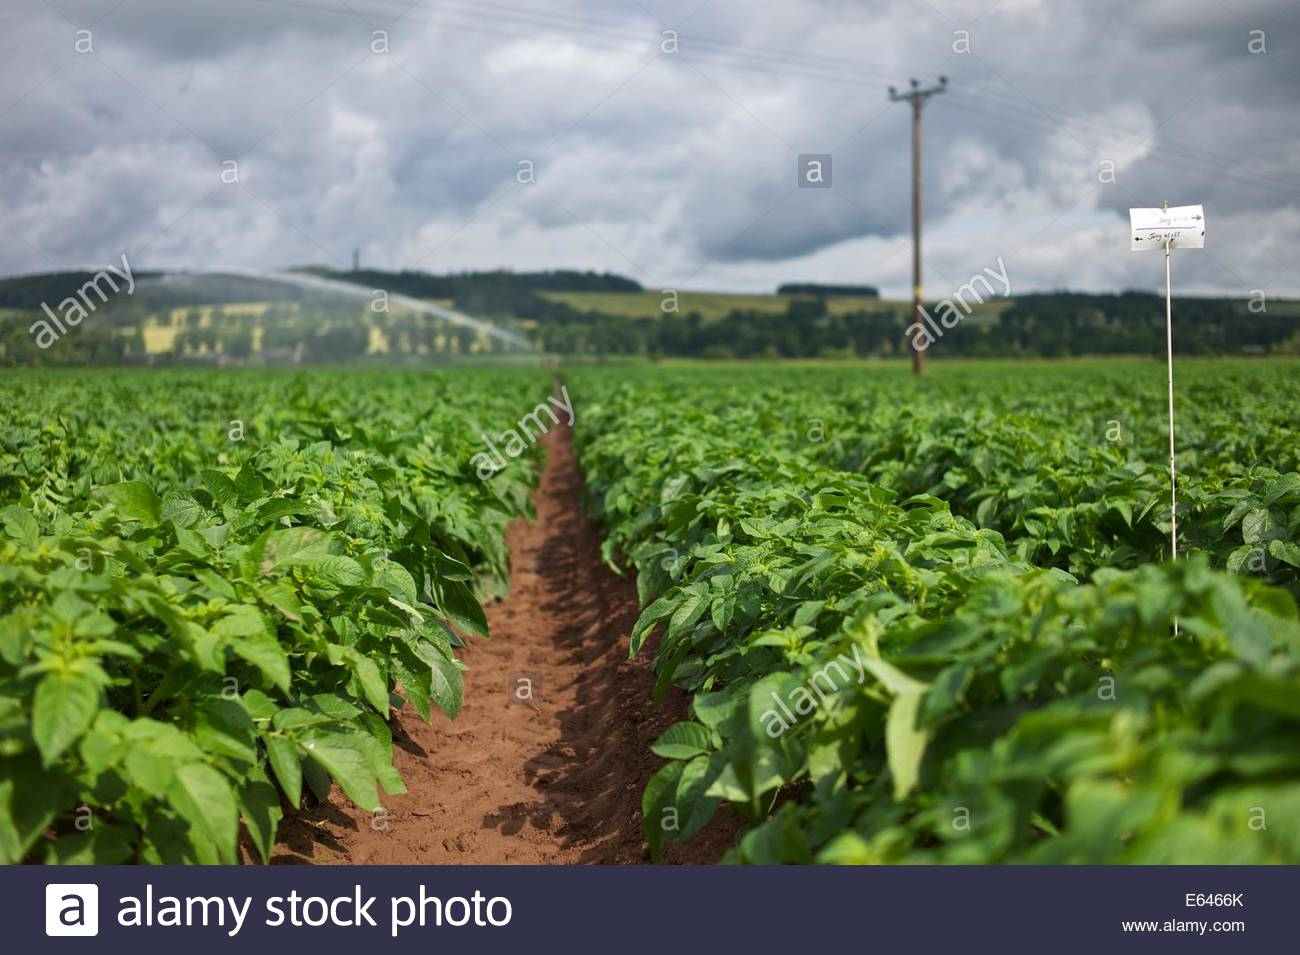 A field of potatoes being watered between the towns of Kelso and Jedburgh in the Scottish Borders. - Stock Image